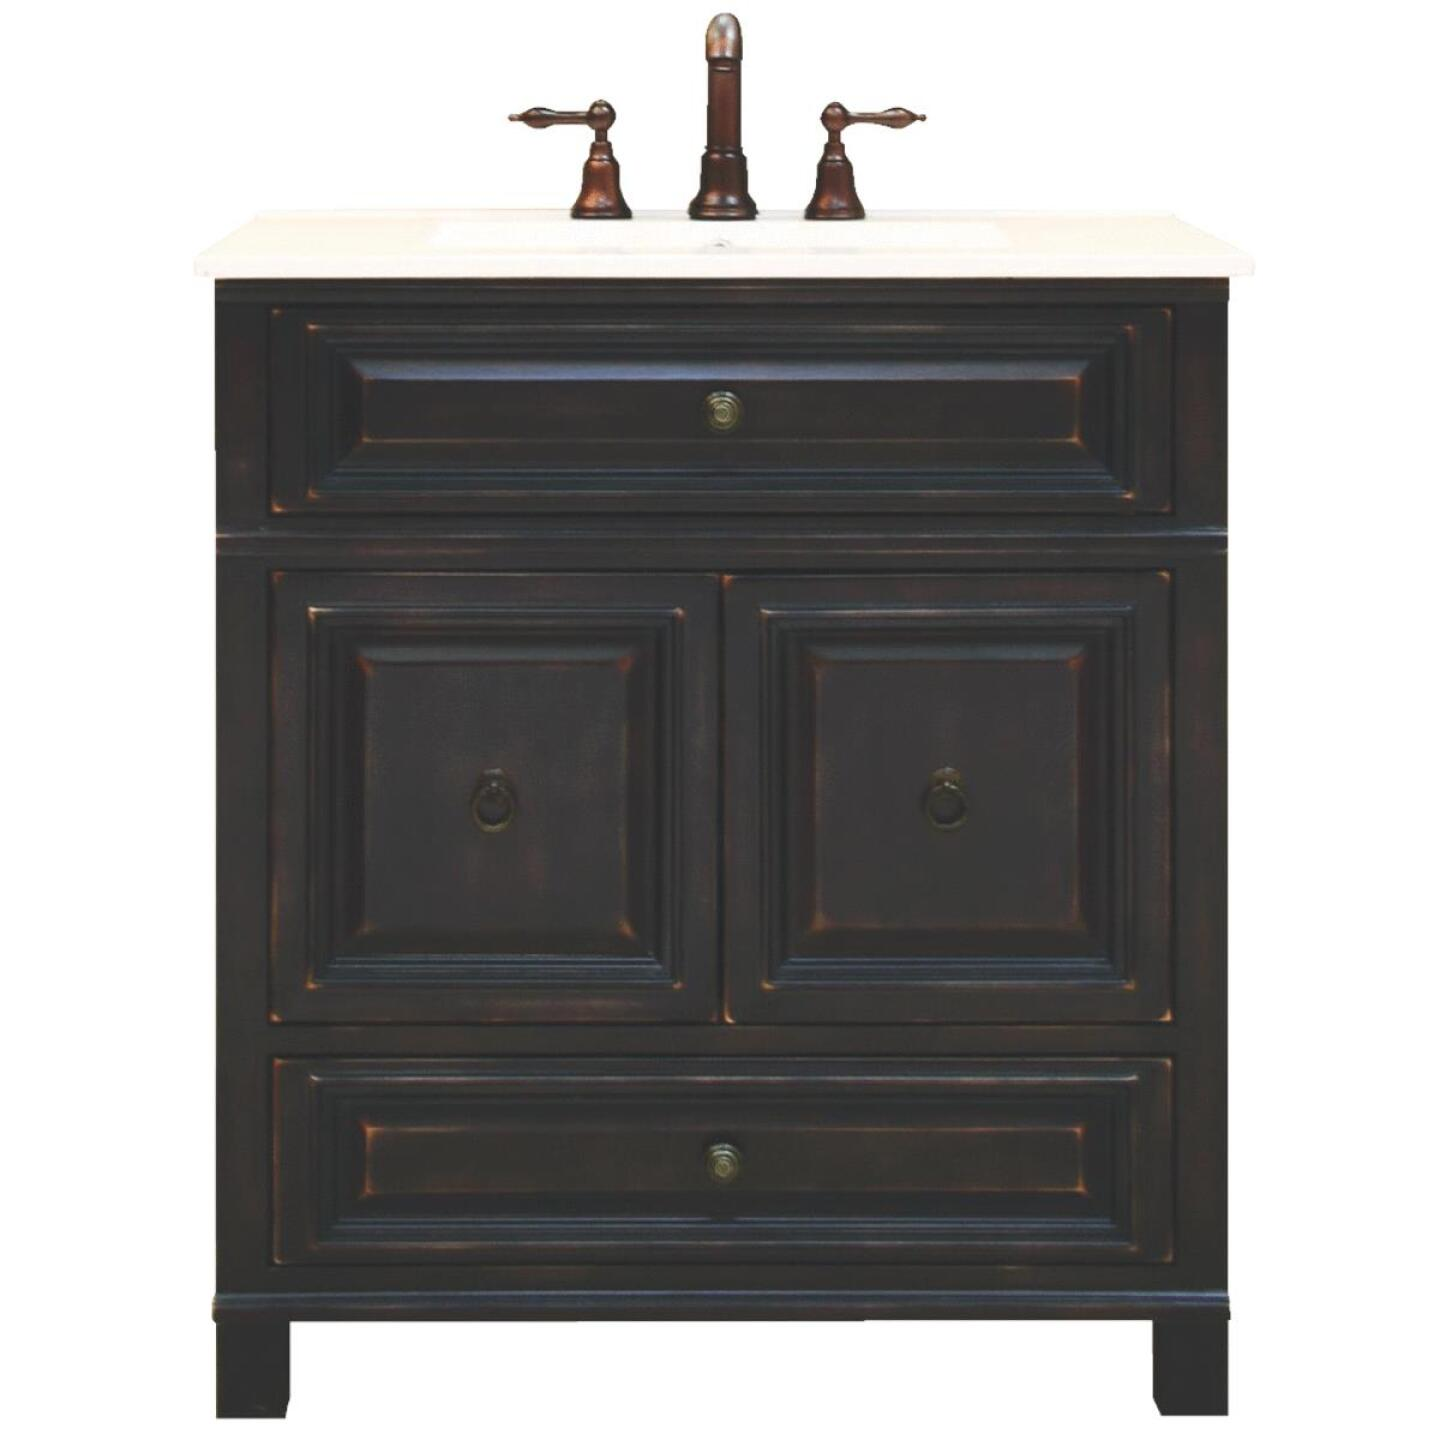 Sunny Wood Barton Hill Black Onyx 30 In. W x 34 In. H x 21 In. D Vanity Base, 2 Door/1 Drawer Image 228